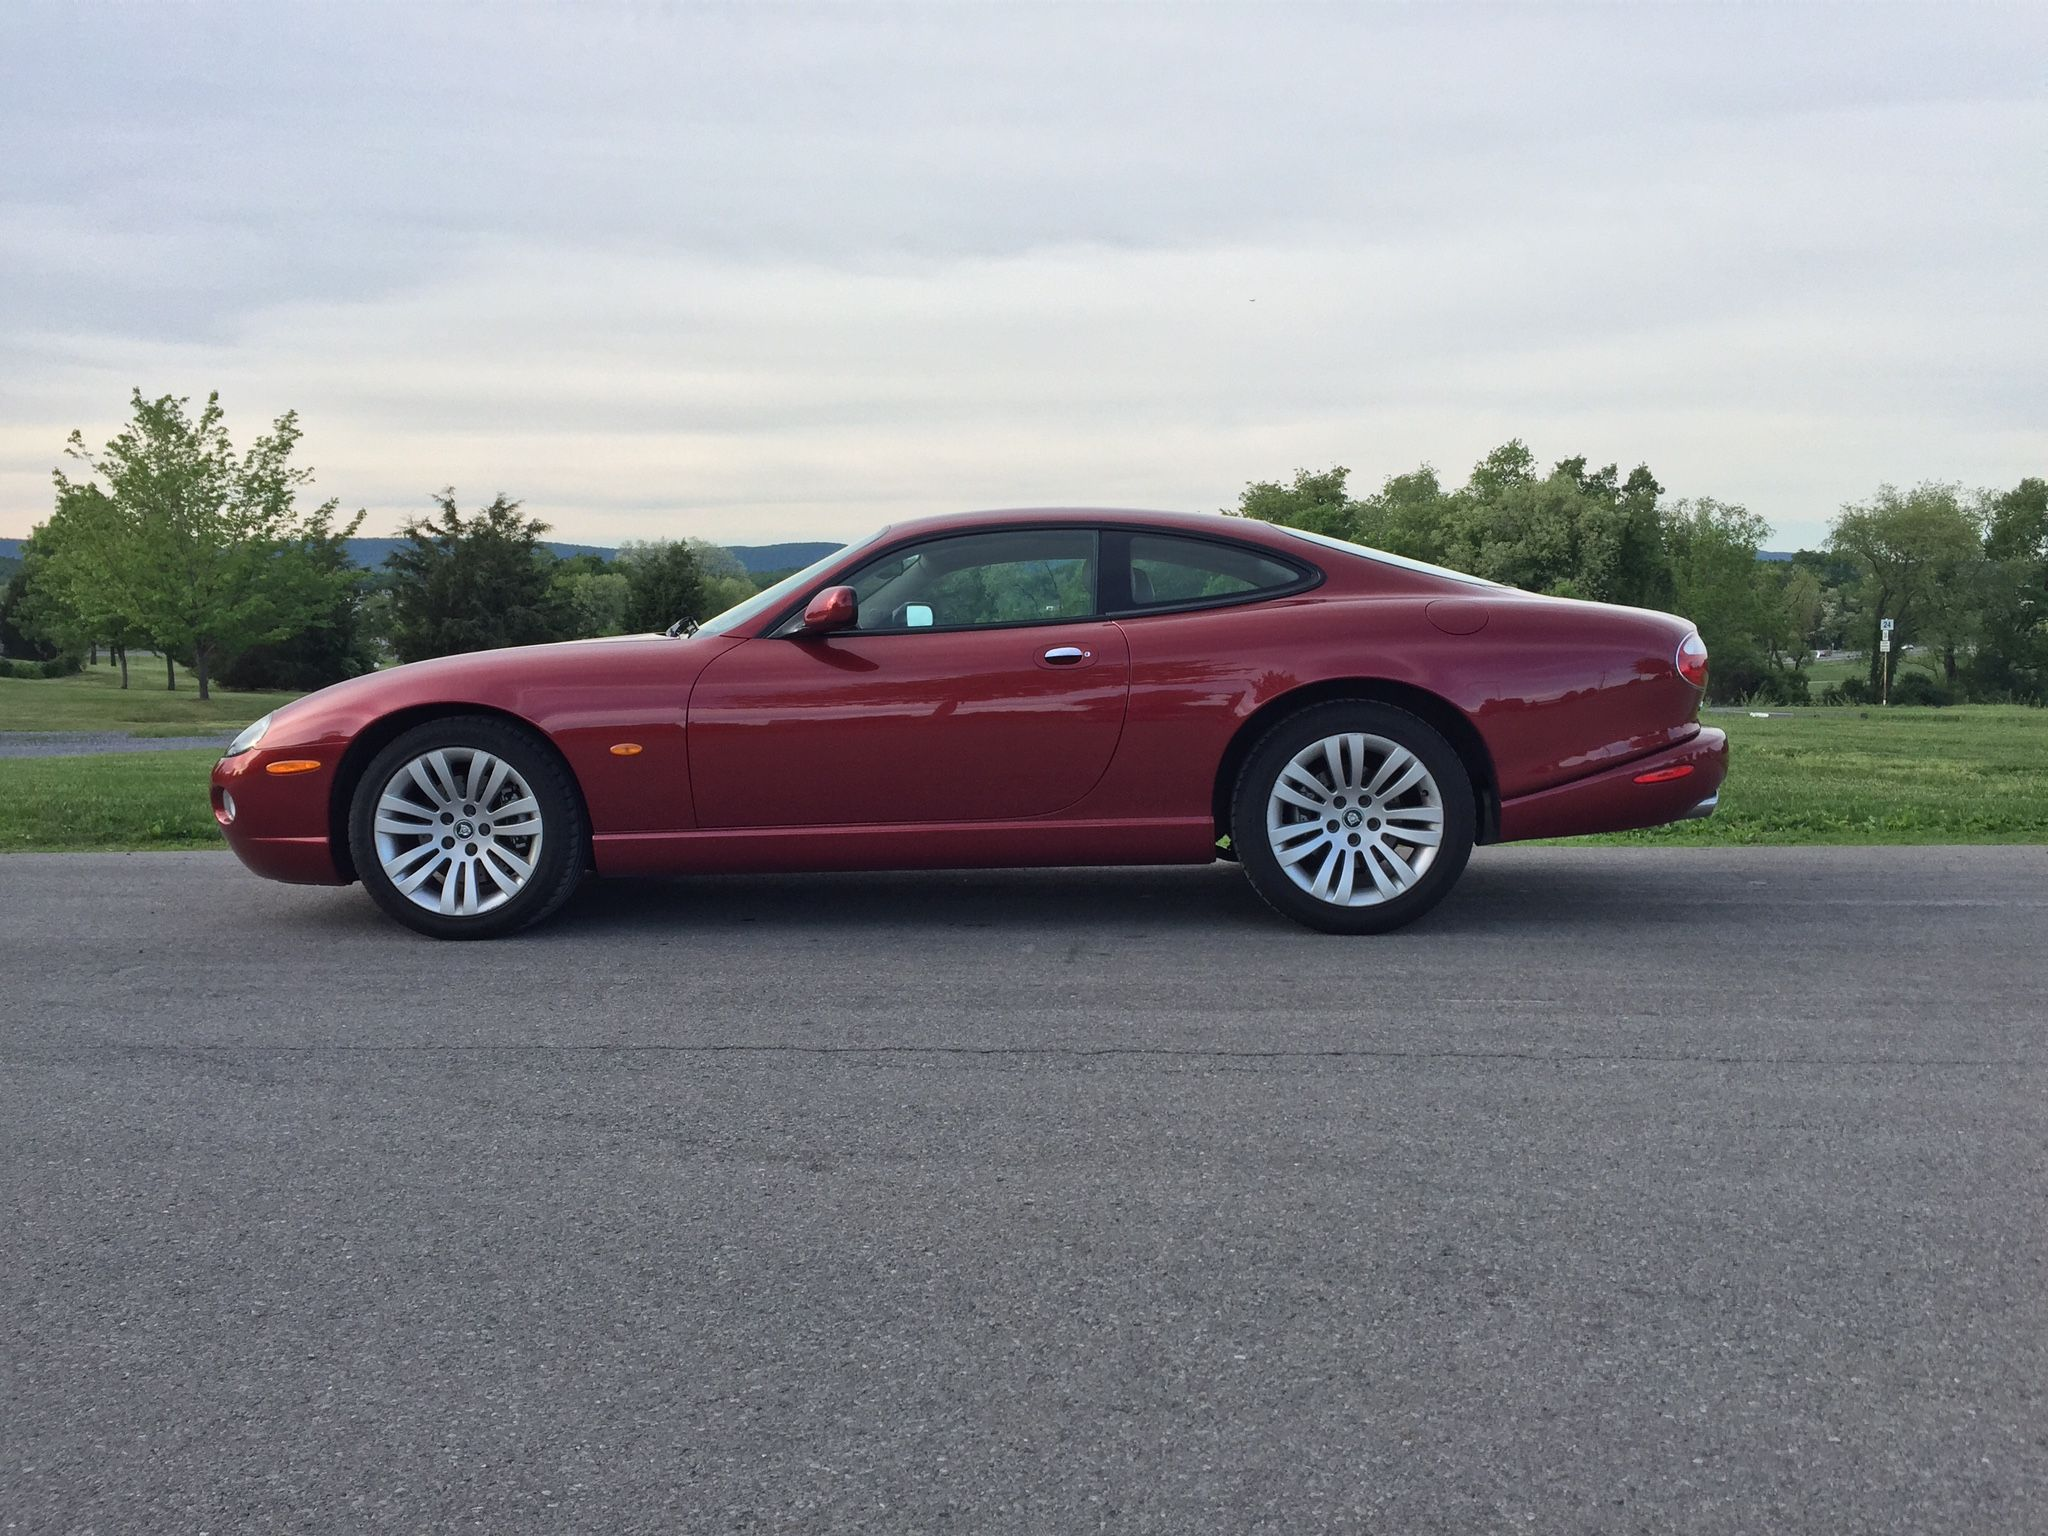 Jaguar 2005 XK8 Radiance Red The iconic E type lineage and